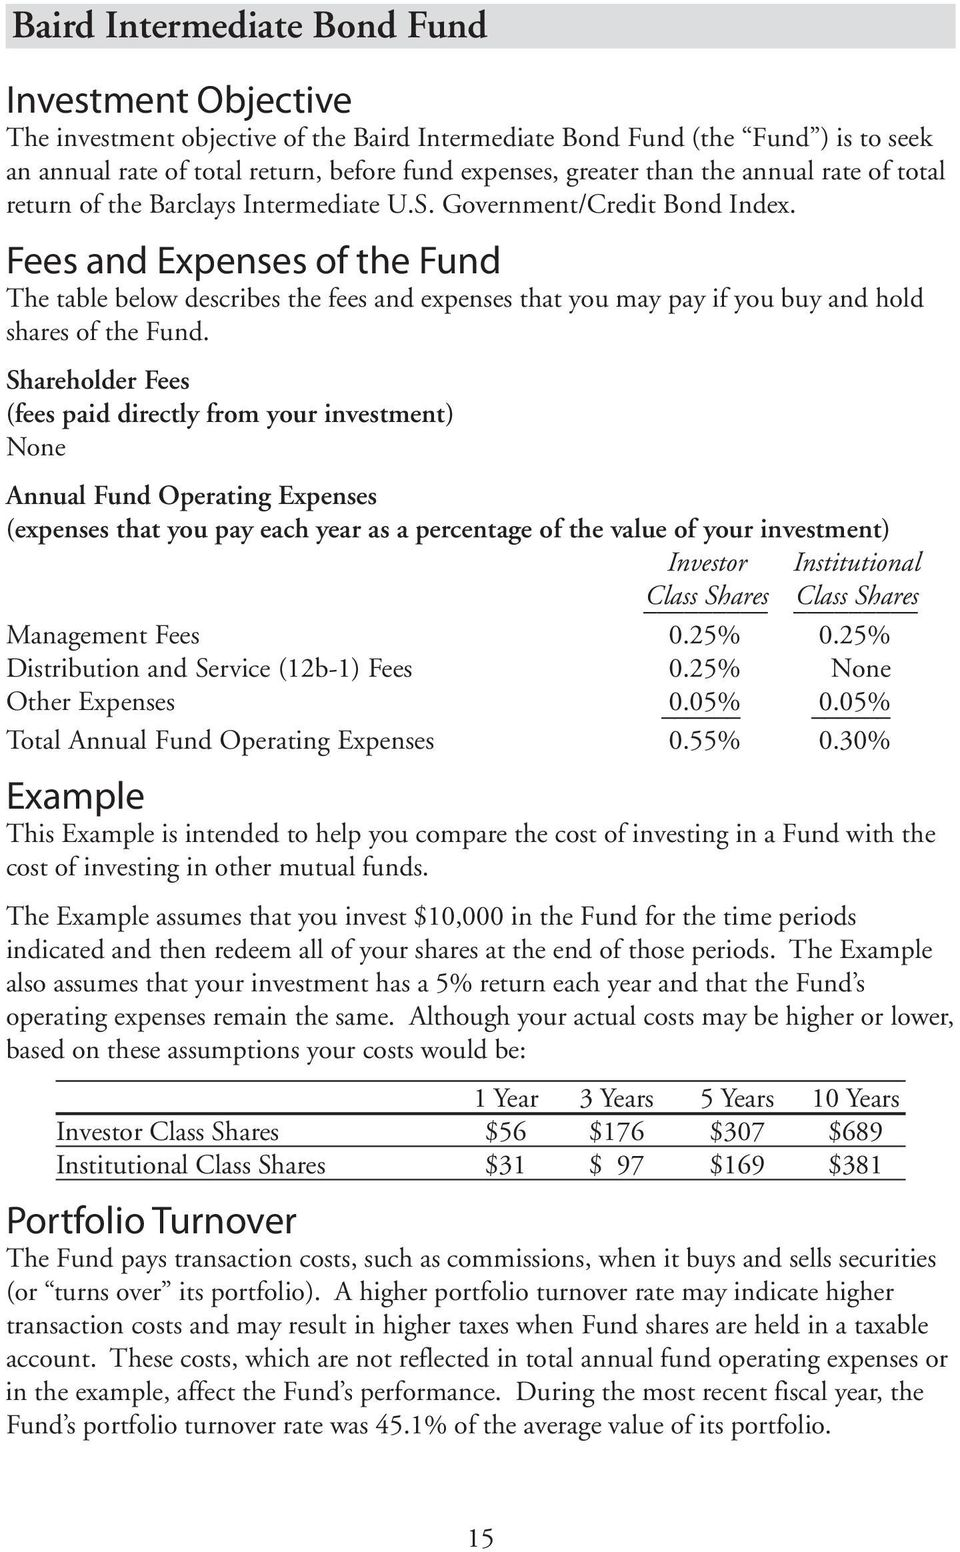 Fees and Expenses of the Fund The table below describes the fees and expenses that you may pay if you buy and hold shares of the Fund.